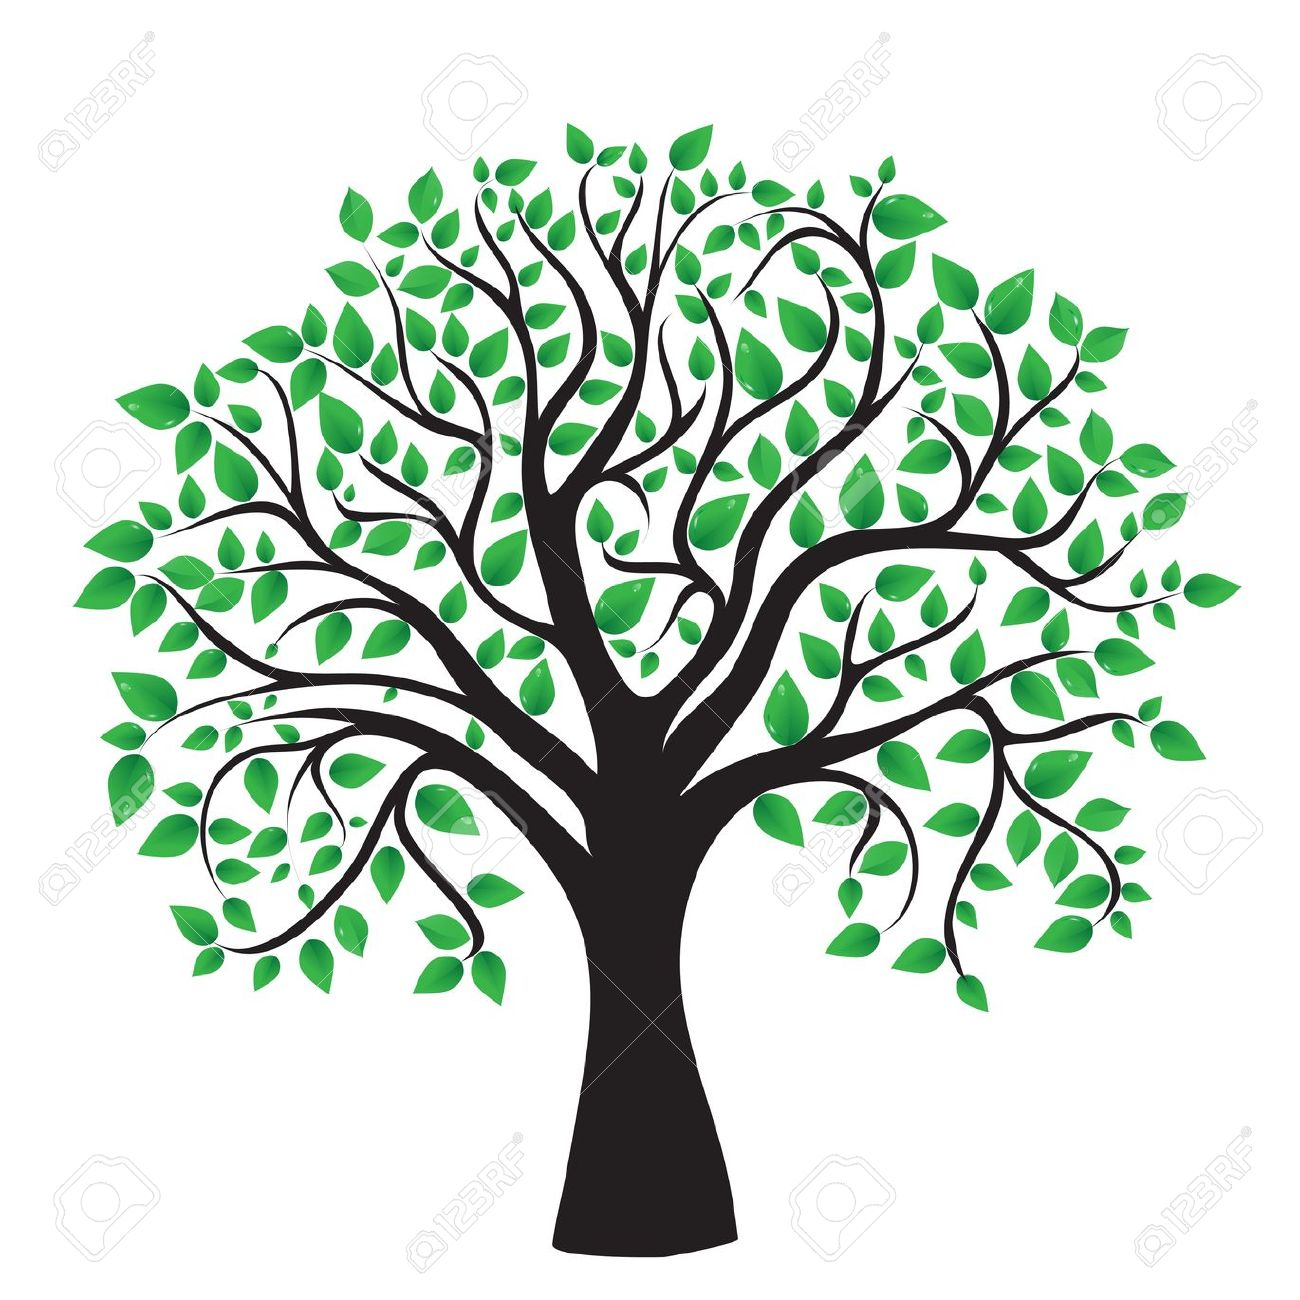 Tree clipart transparent background Collection Evergreen clipart green leaves